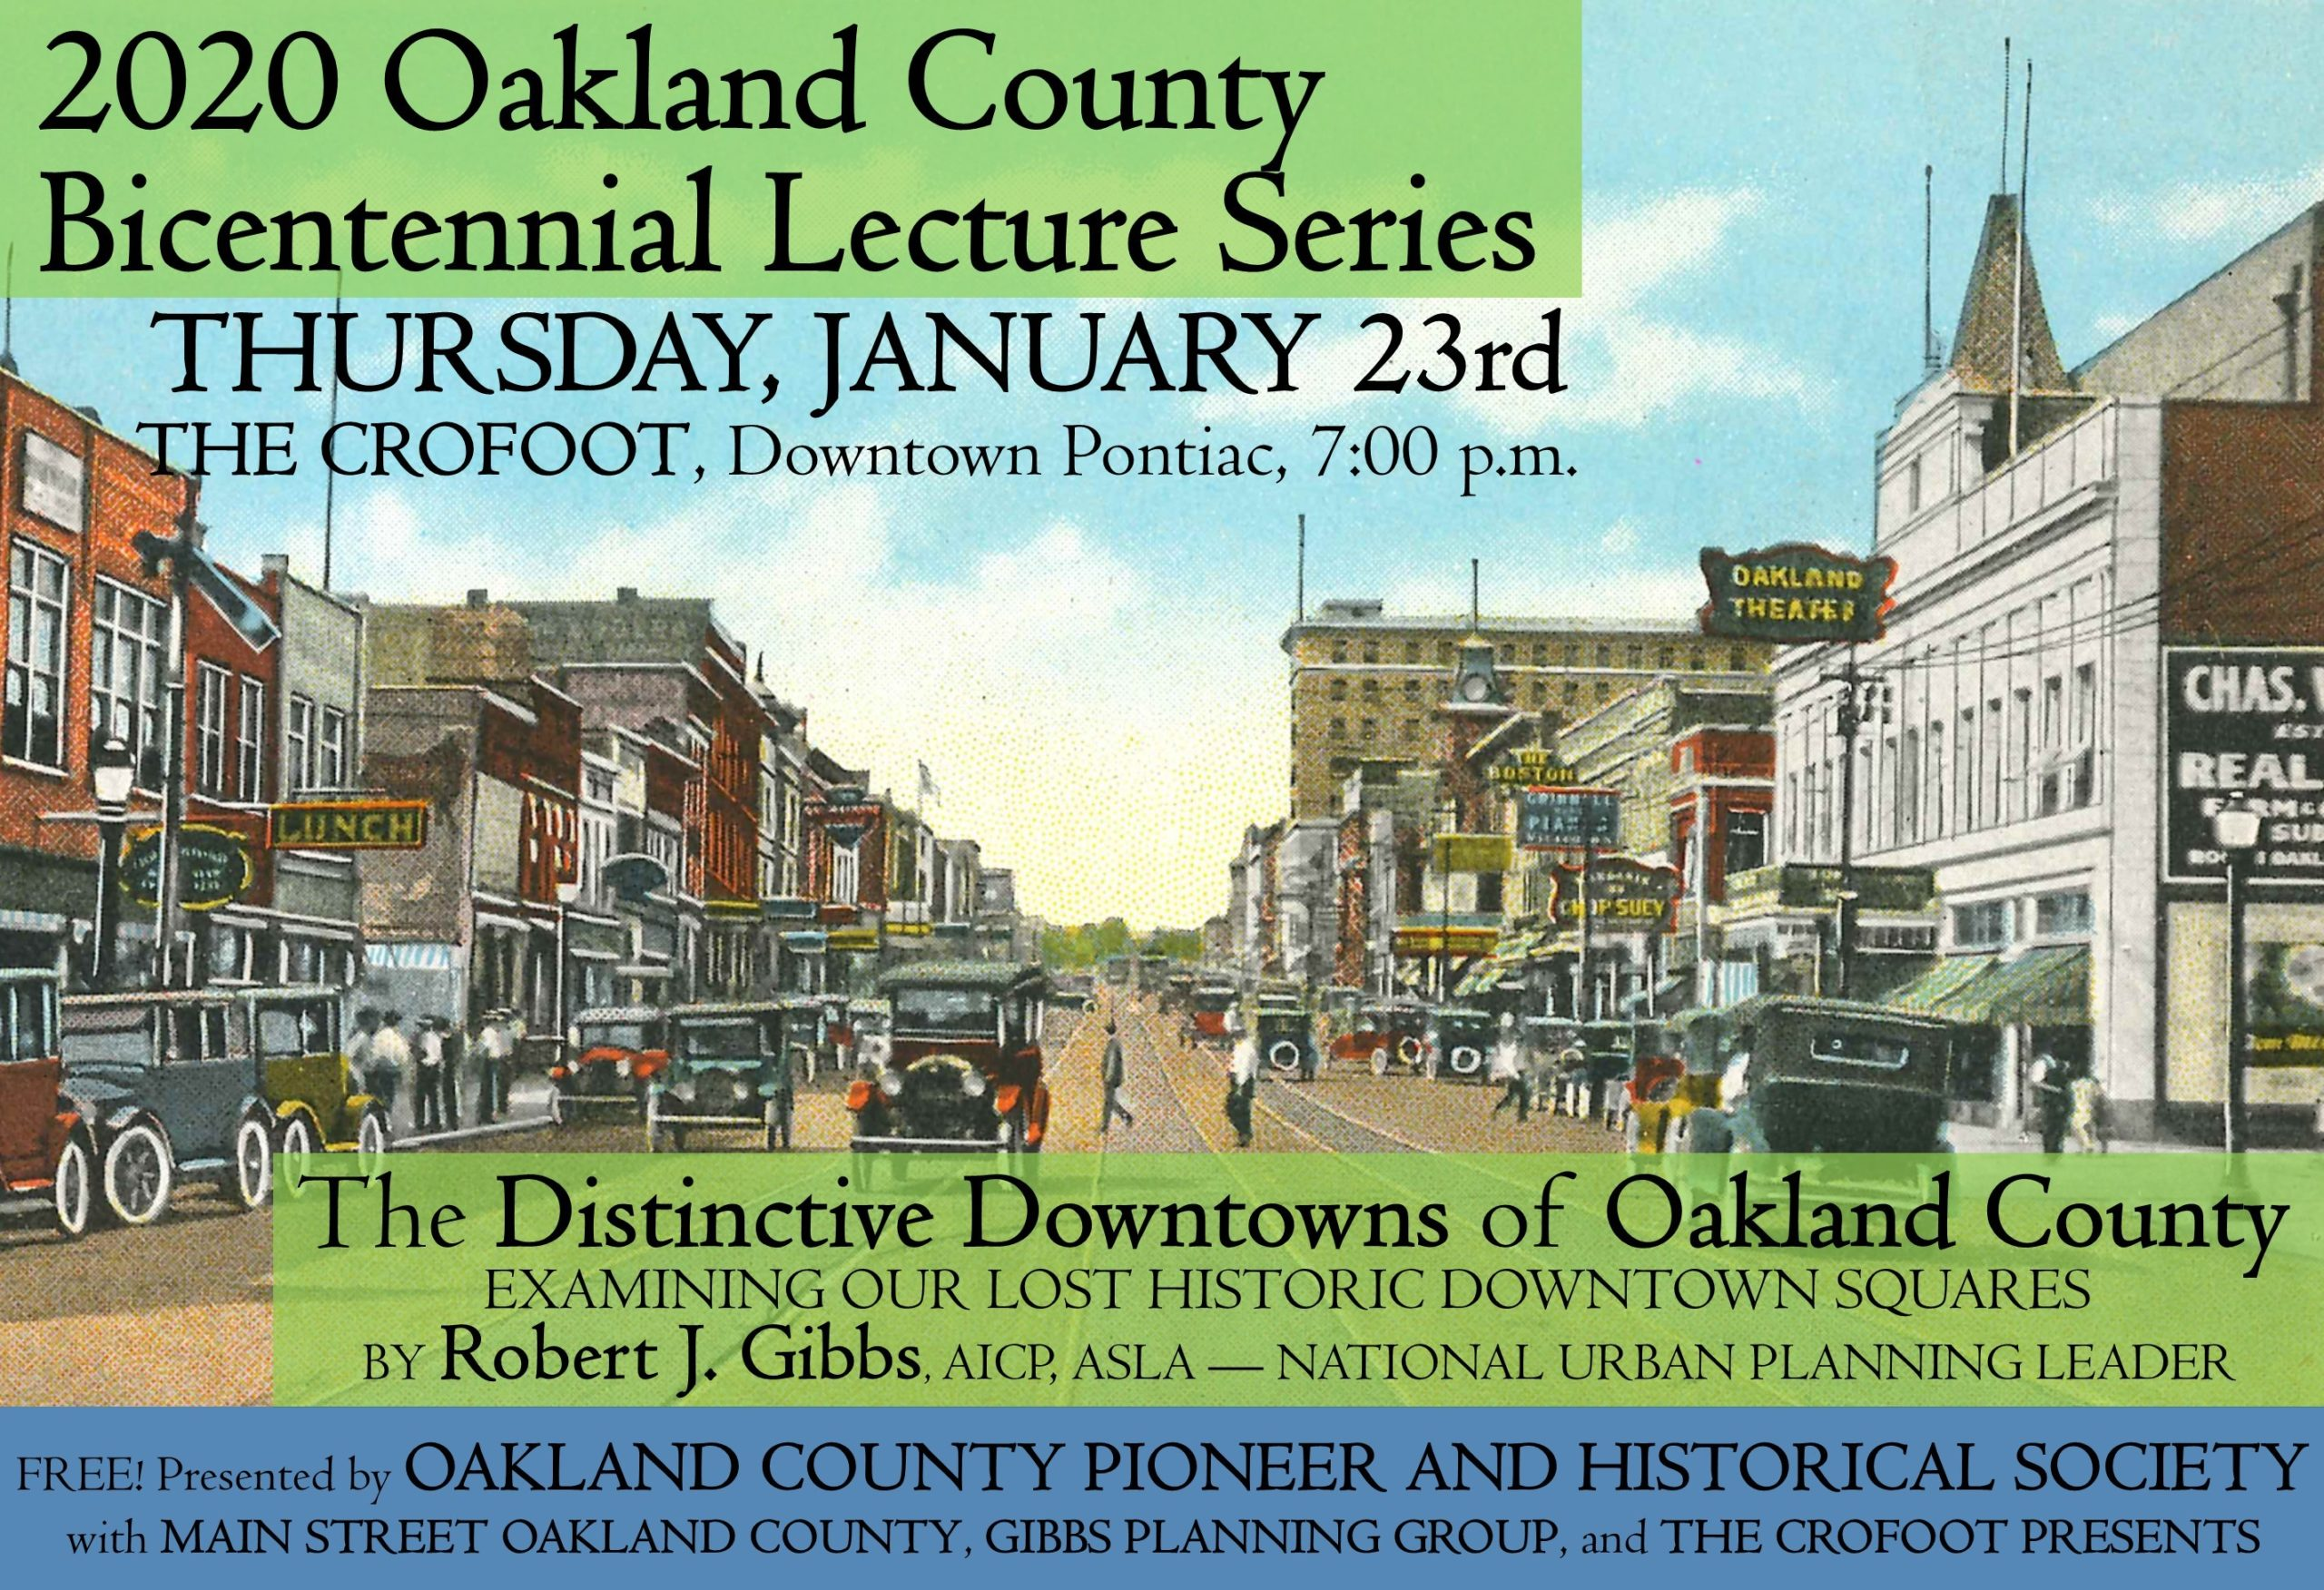 """Oakland County's Distinctive Downtowns""- Robert Gibbs, AICP, ASLA"